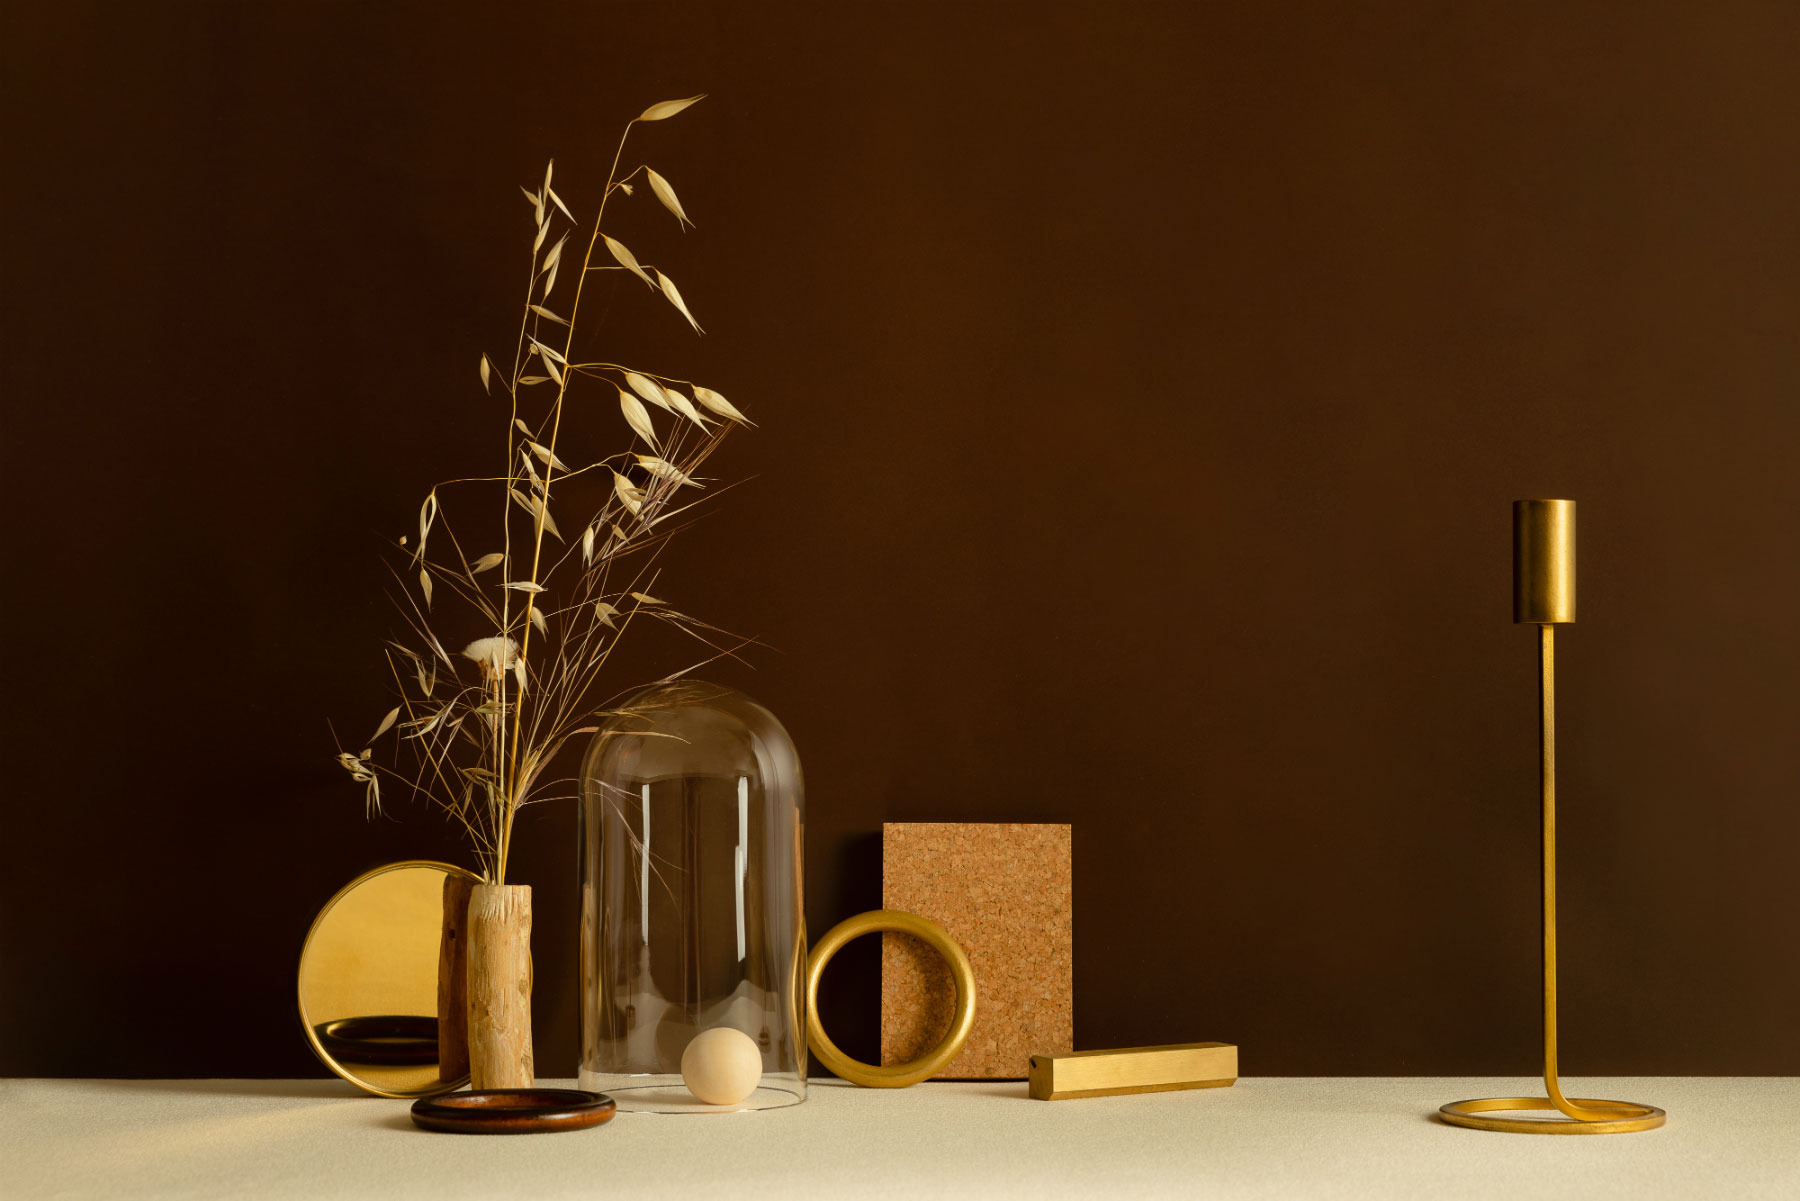 brown earth tones with gold and corck still life editorial